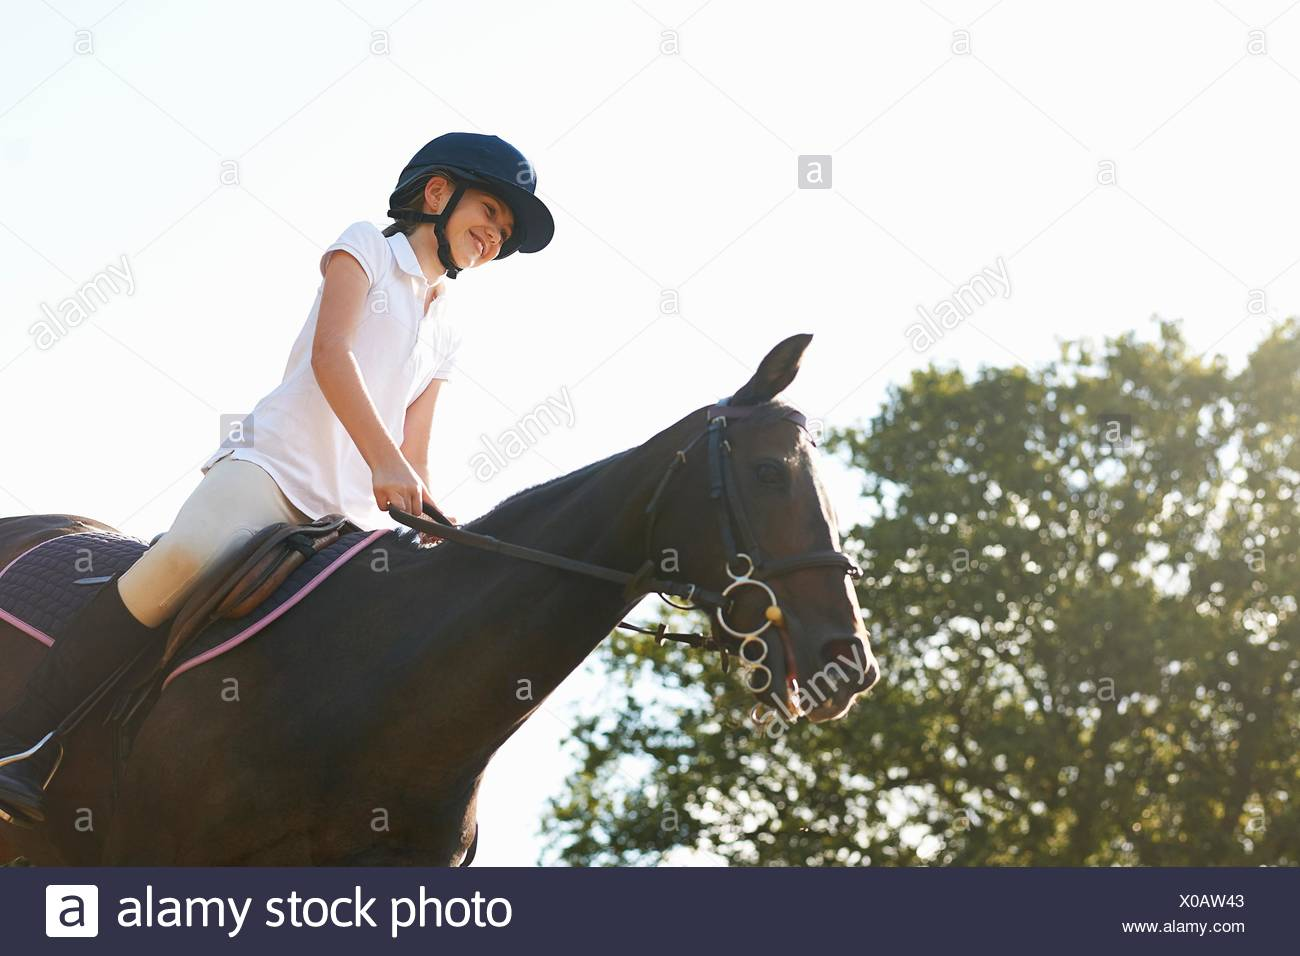 Low angle view of girl riding horse in countryside Photo Stock